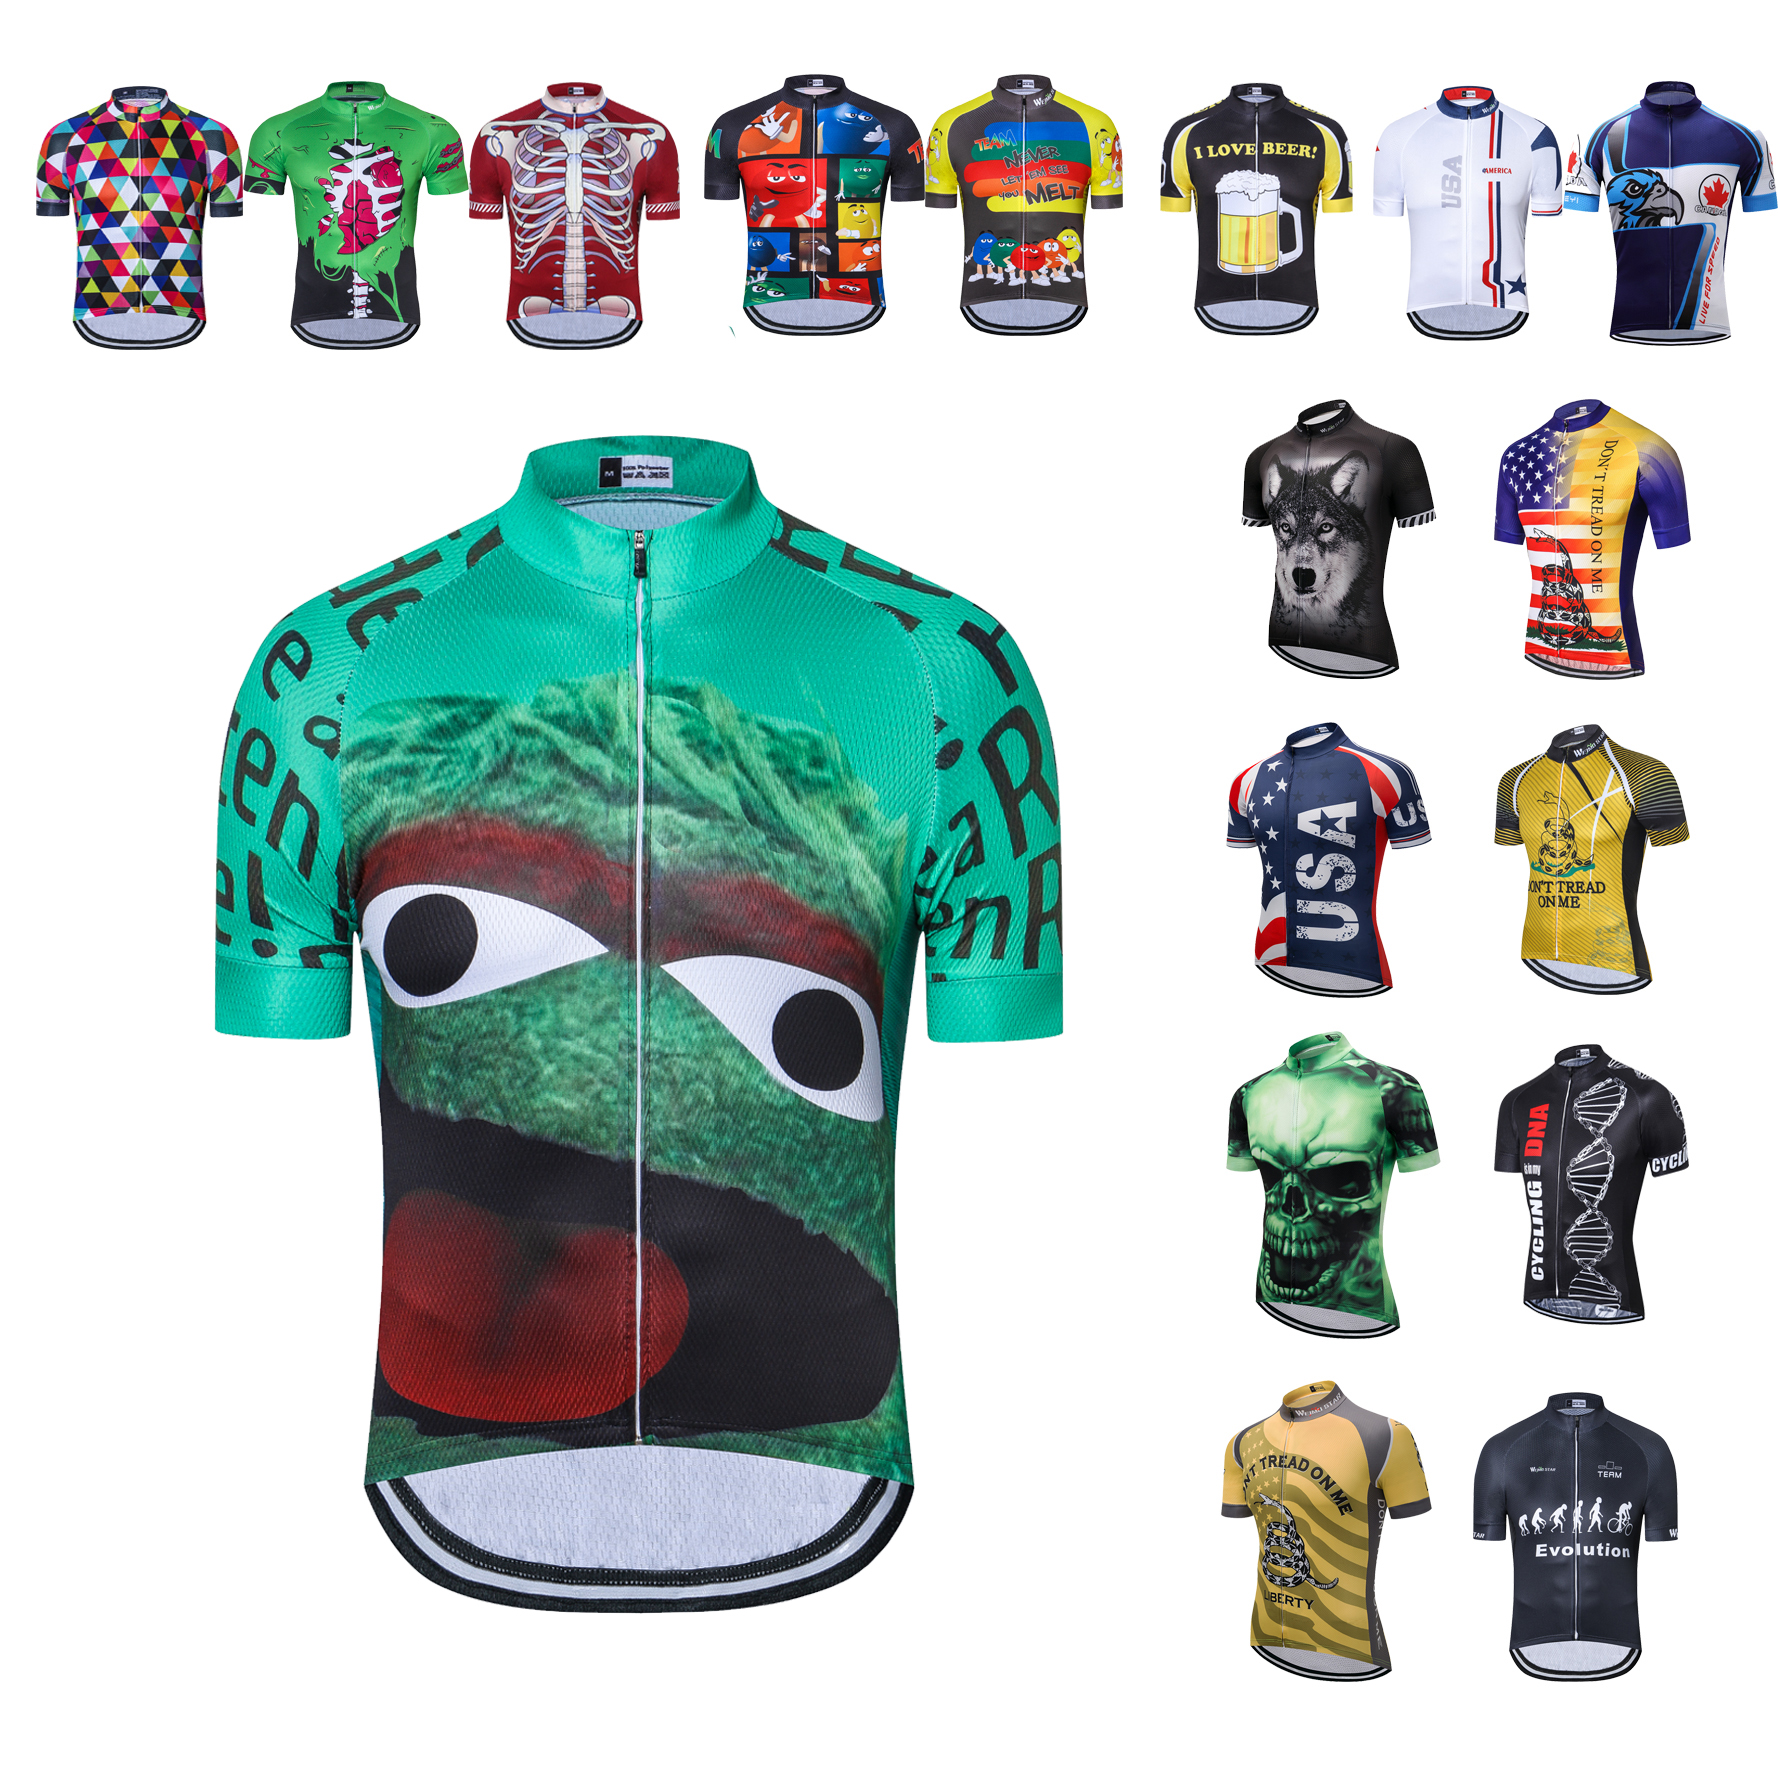 UFOBIKE Cycling Jersey Men Retro Summer 2019 Short Sleeve Mountain Bike Jersey Apparel Mtb Shirt Biking Tops Maillot Ciclismo